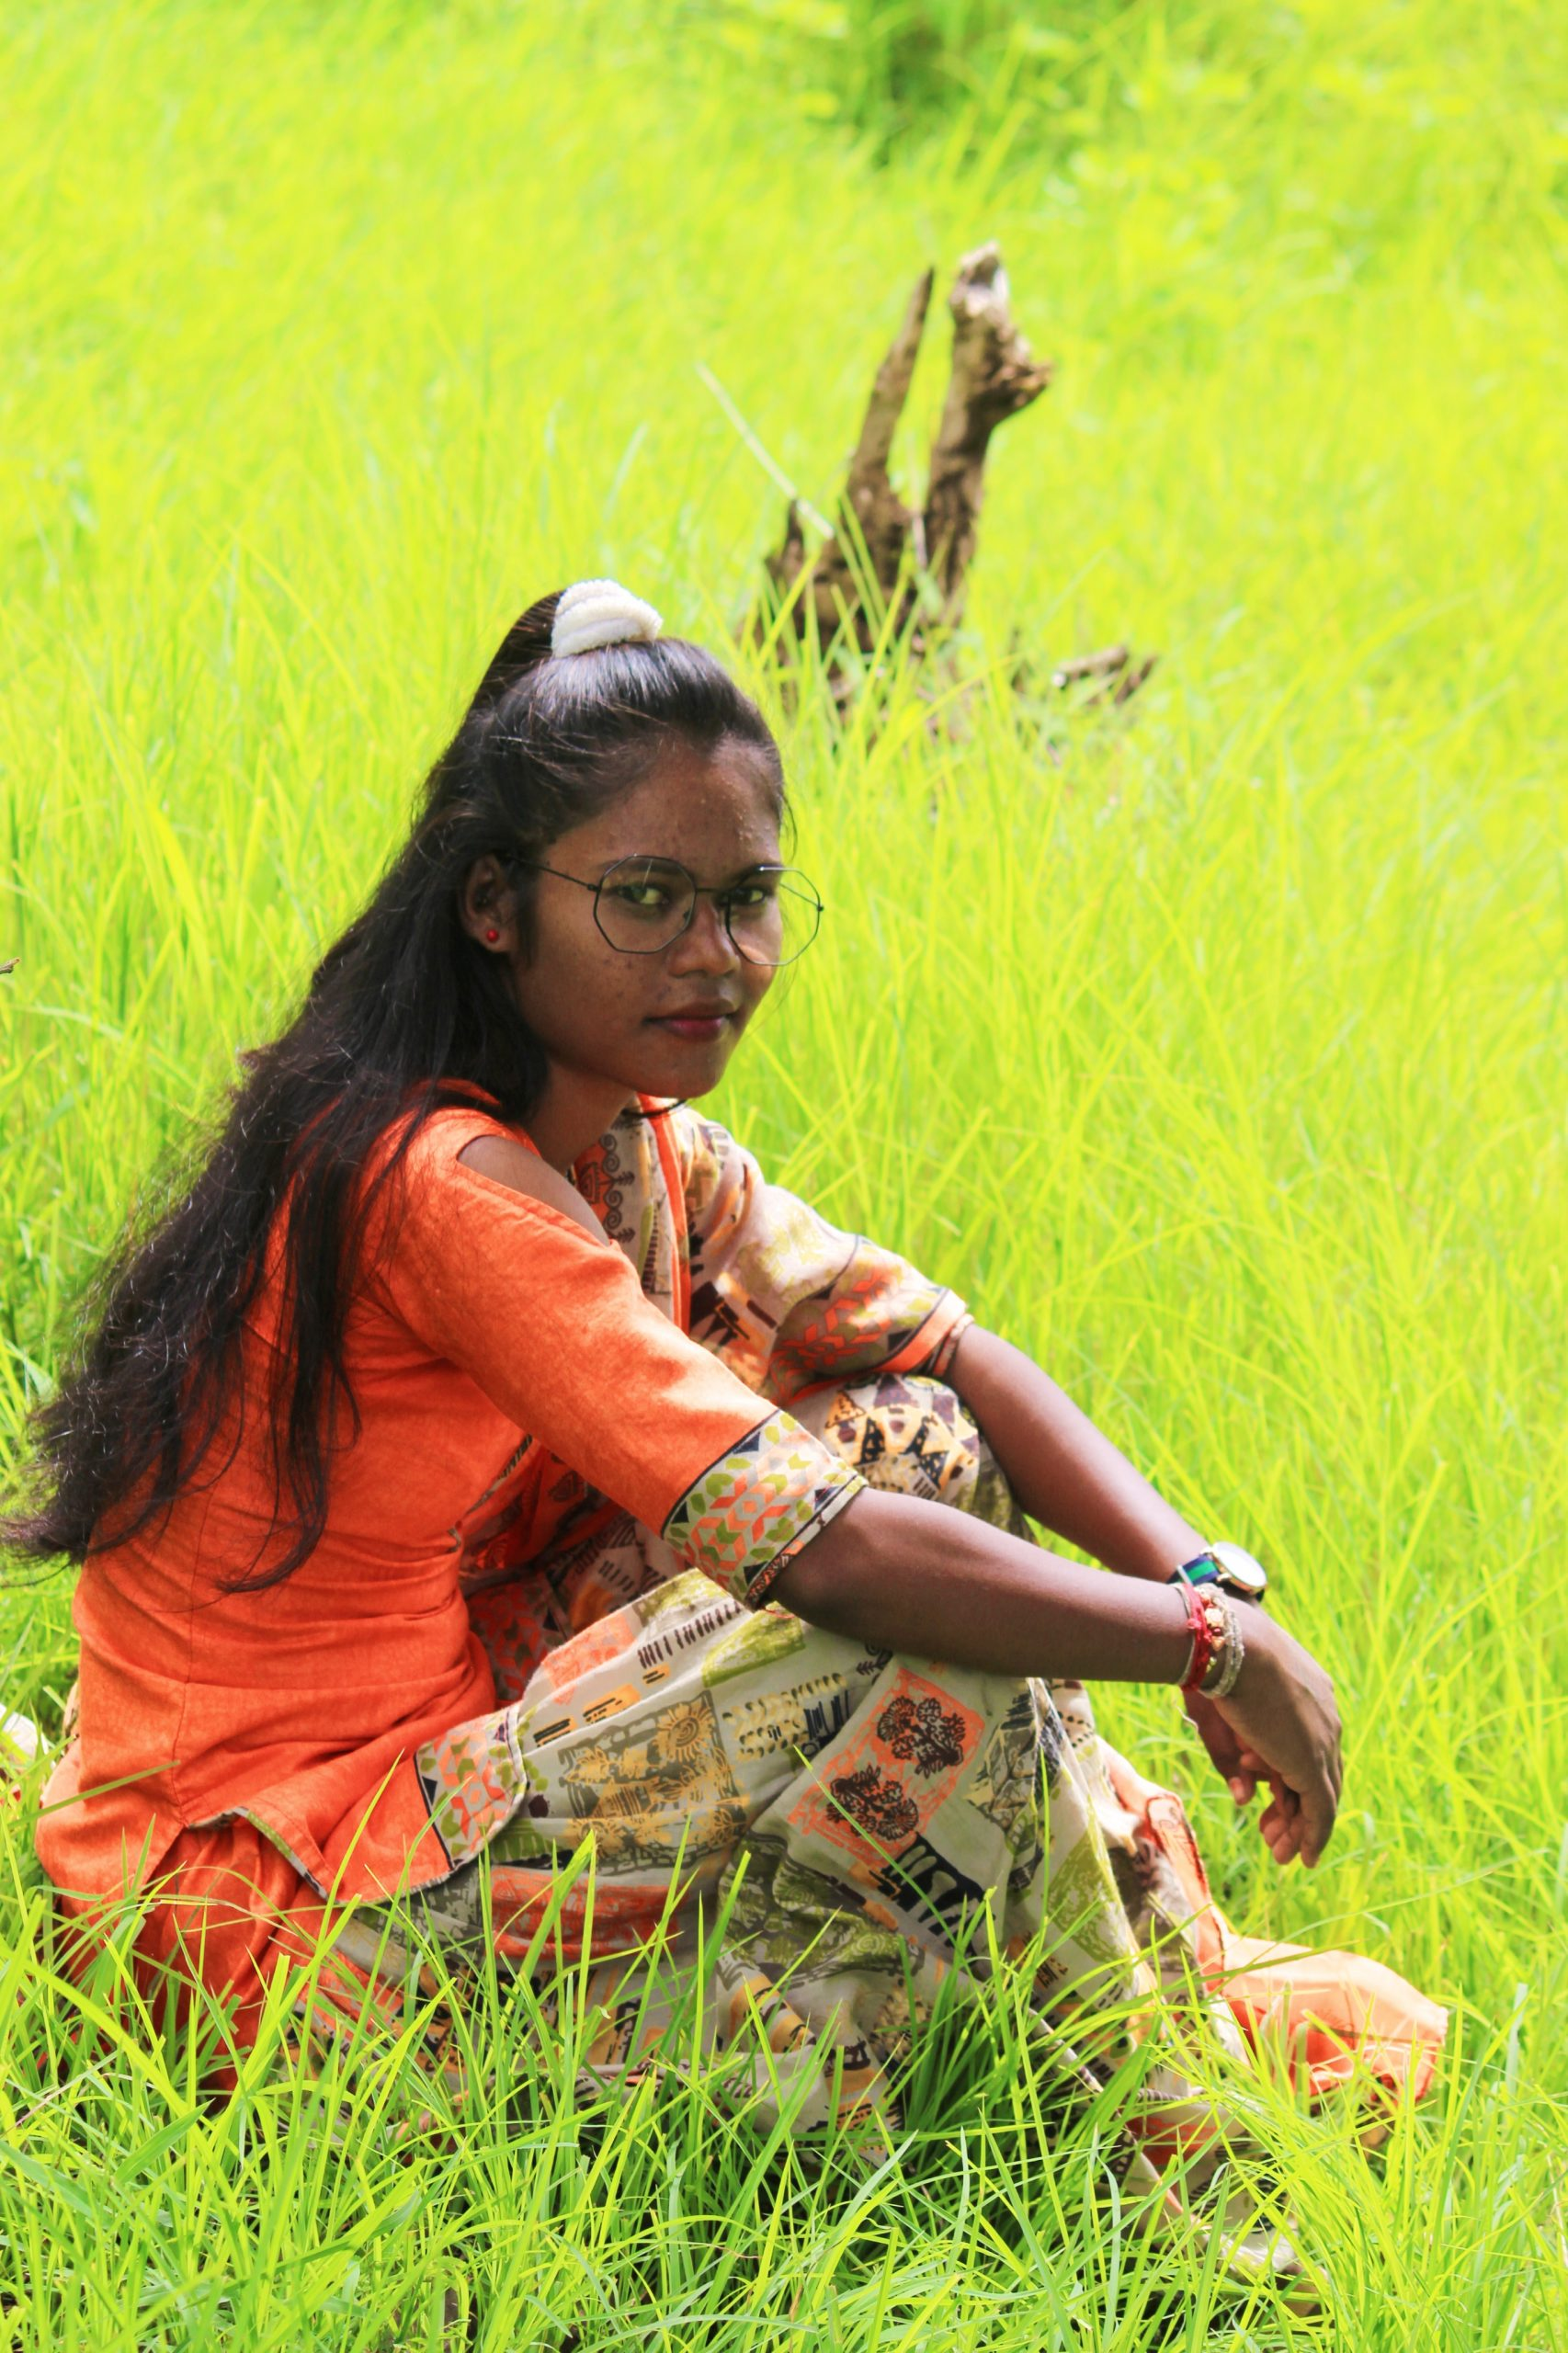 A girl sitting on grass